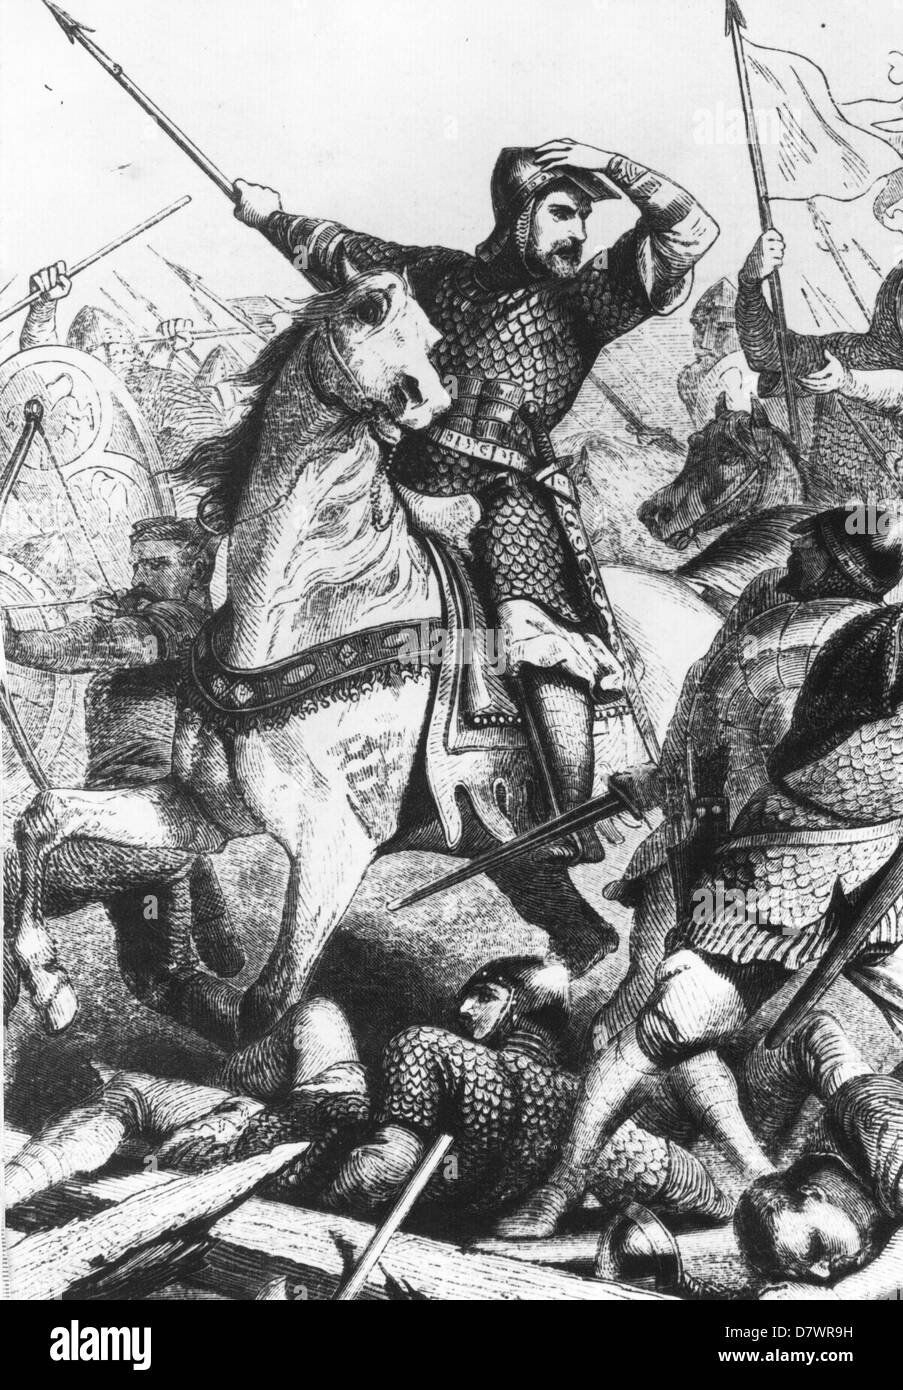 WILLIAM THE CONQUEROR (c1028-1087) at the Battle of Hastings in a 18th century engraving - Stock Image